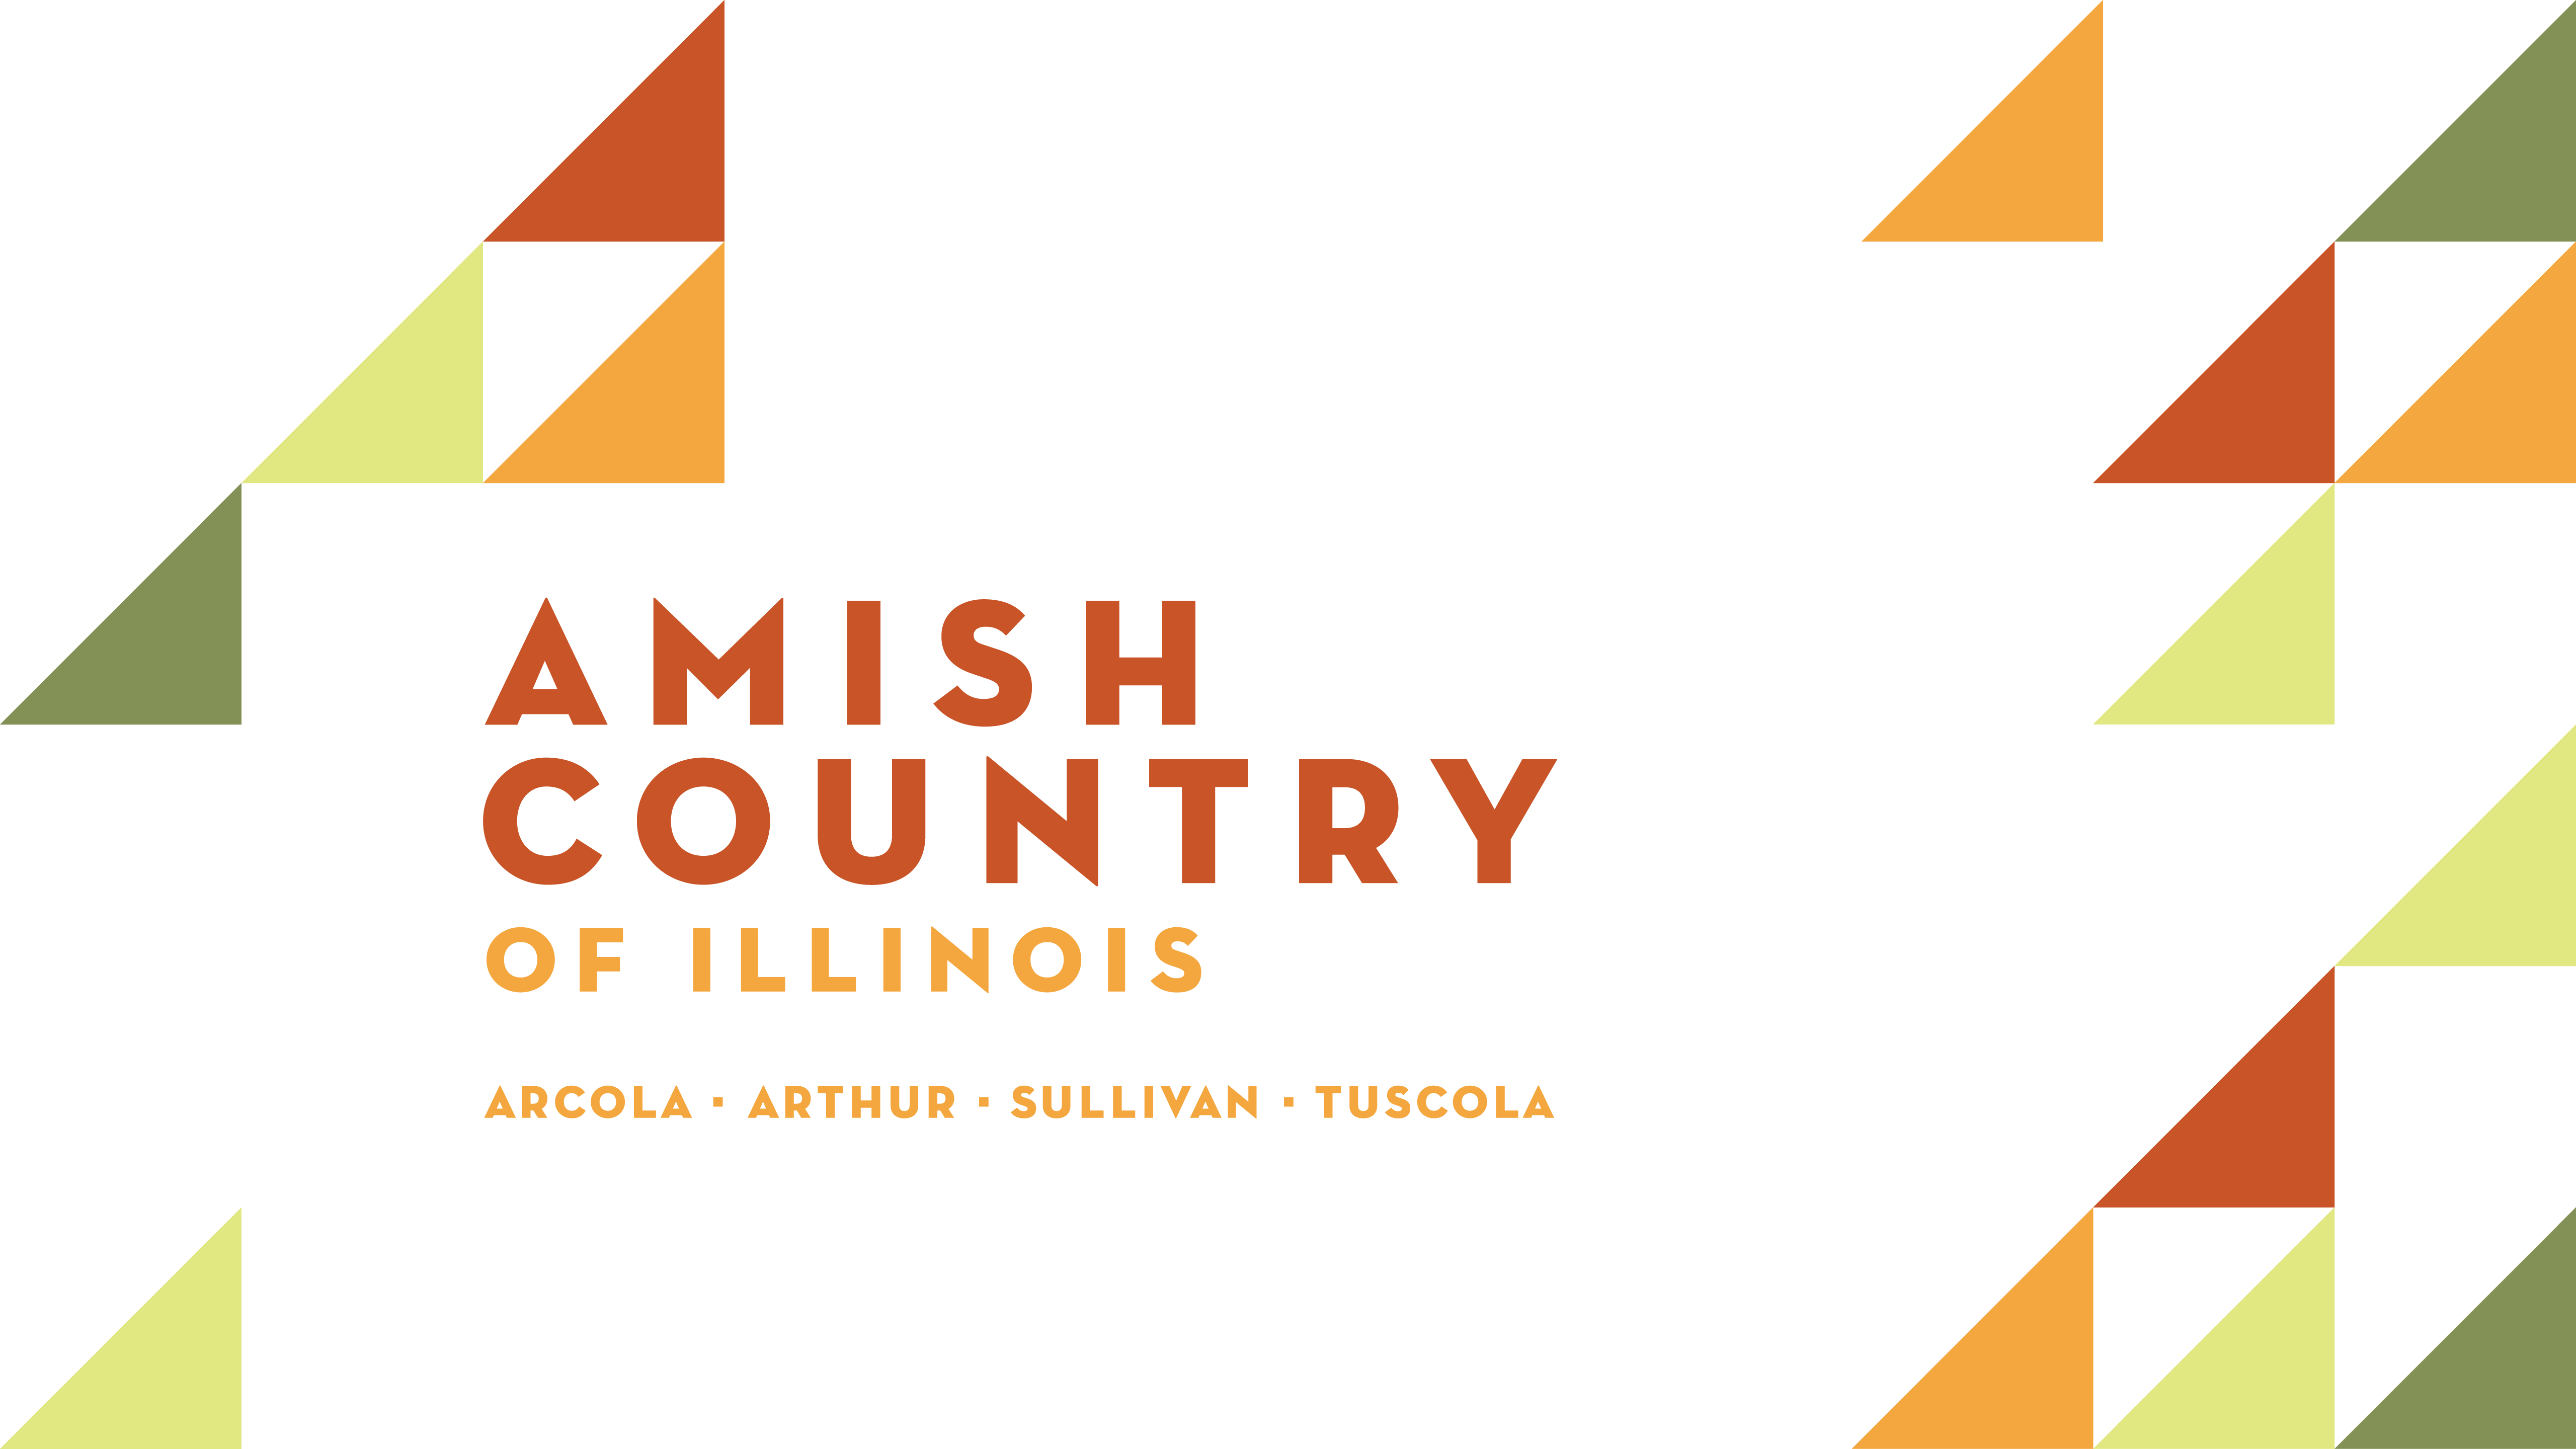 Amish Country of Illinois Branding - Logo